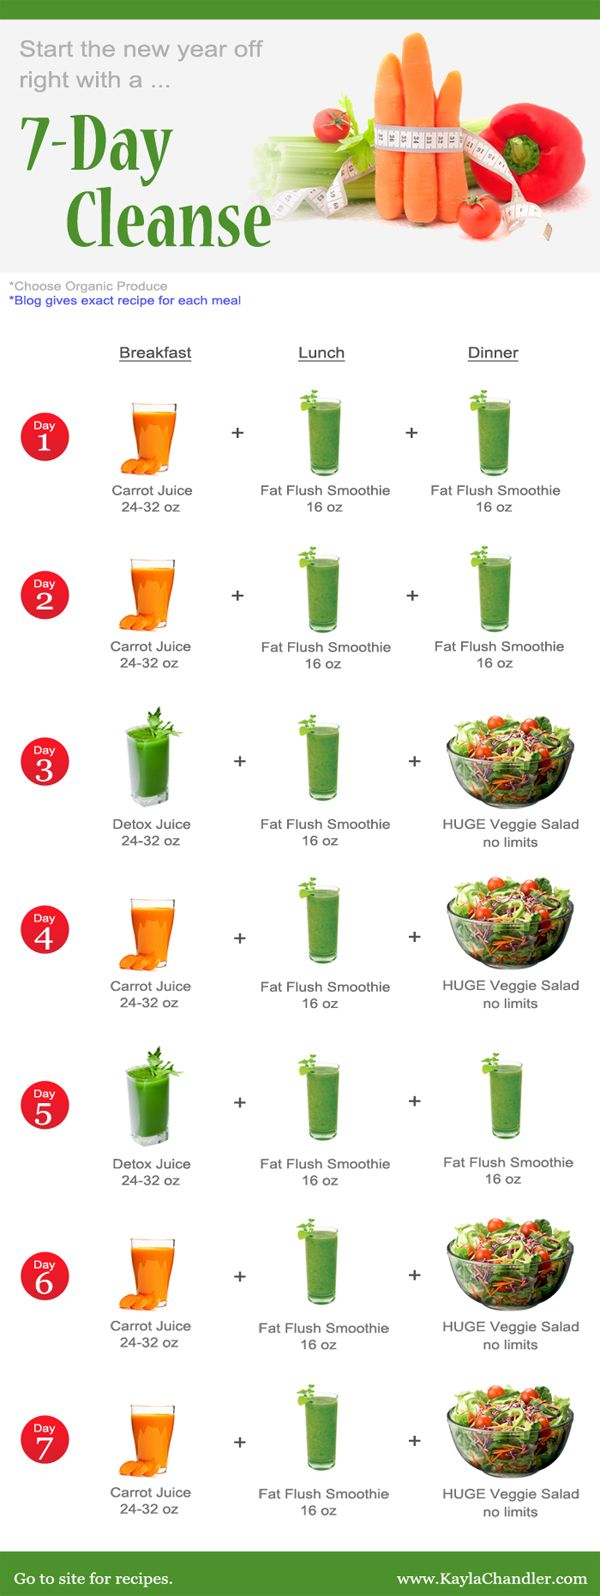 Start the New Year Off Right with a 7-Day Detox Cleanse (and lose weight!) | Kayla Chandler